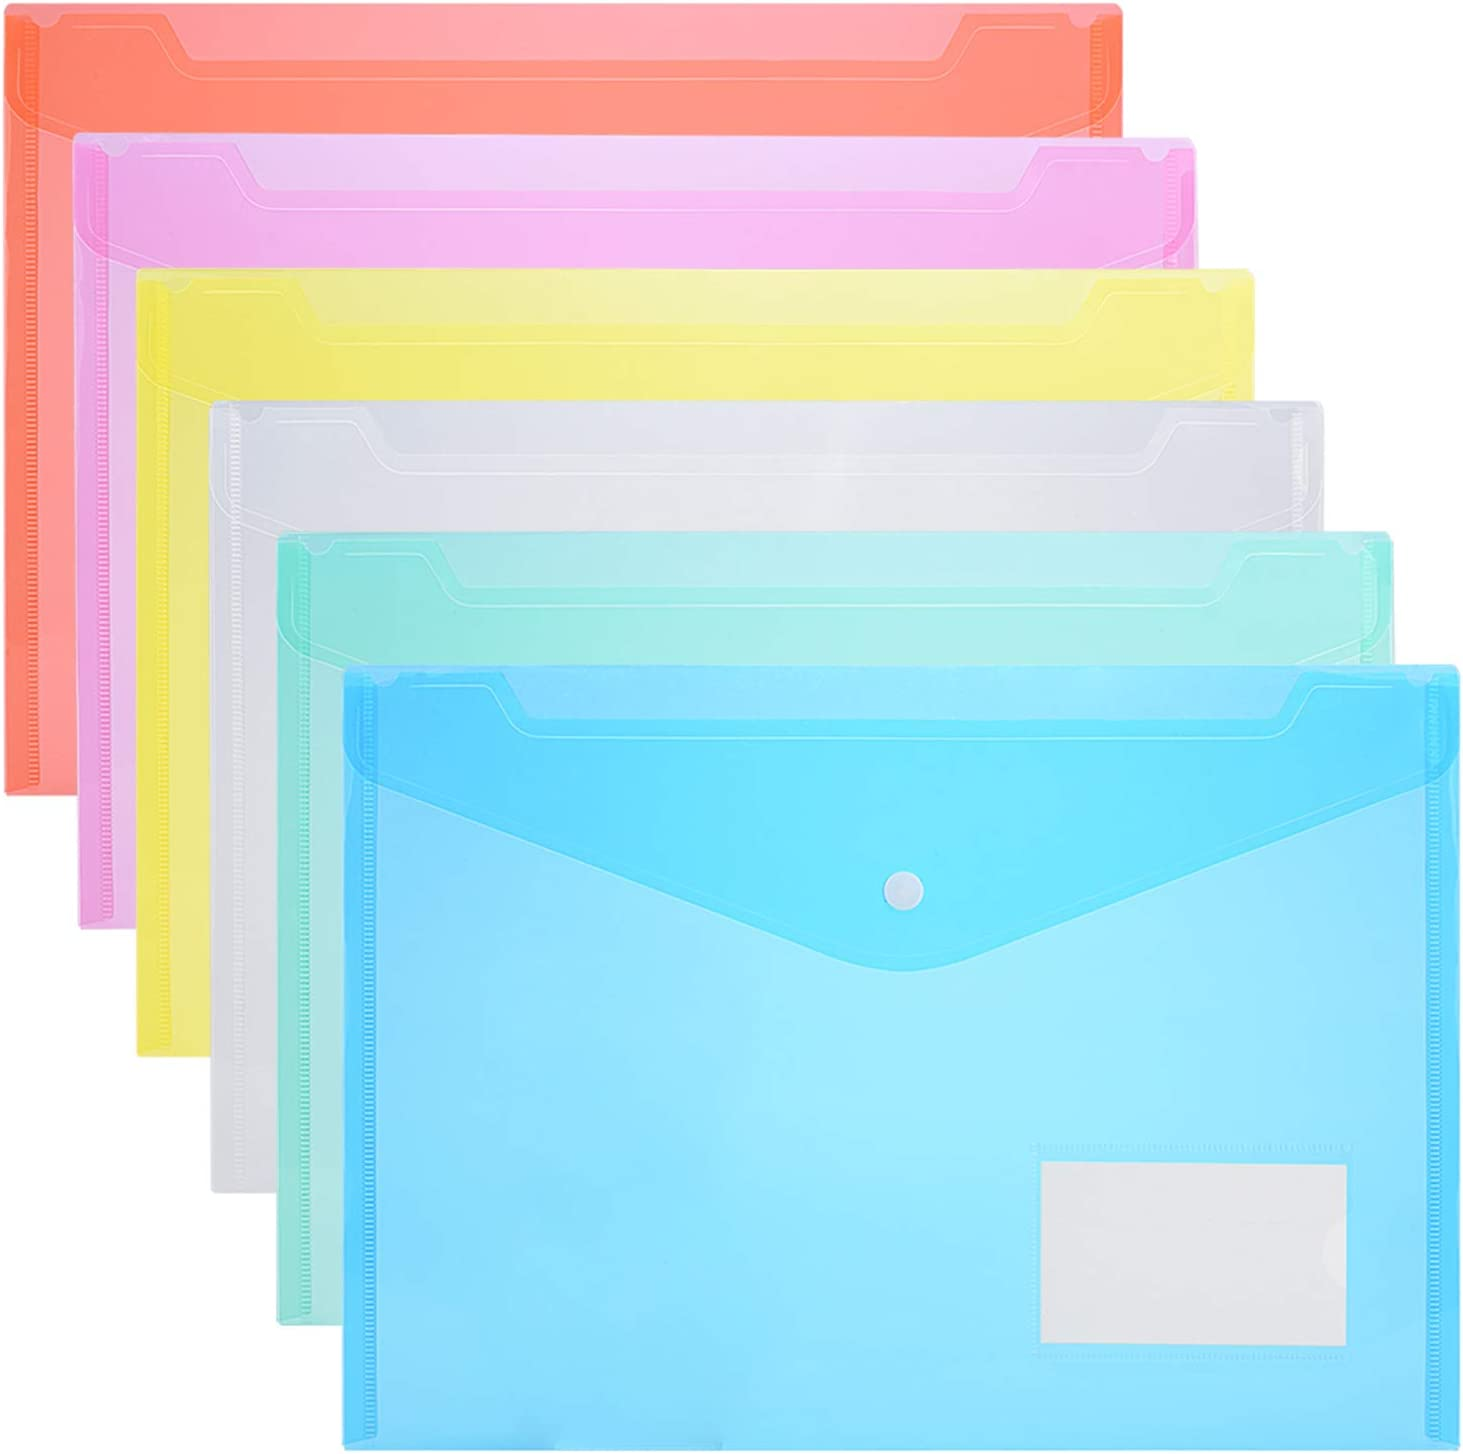 ZCZN 42 Pack of Clear Plastic Document Folders Letter Size File Envelopes with Label Pocket and Snap Button for School Home Work Office Organization, 6 Assorted Color, A4 Size